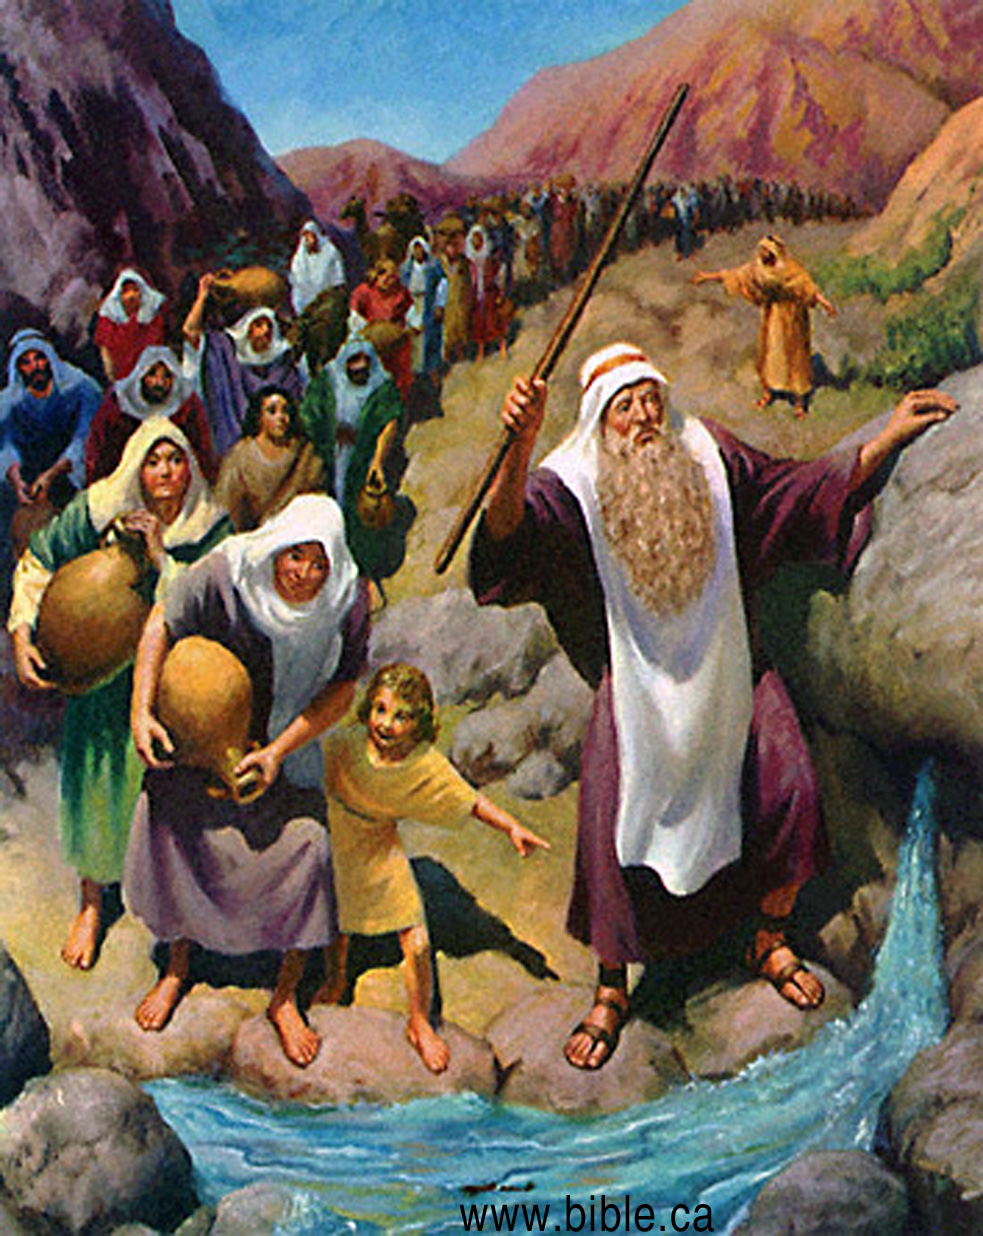 The Exodus Route: A scriptural proof, with the witness of history.